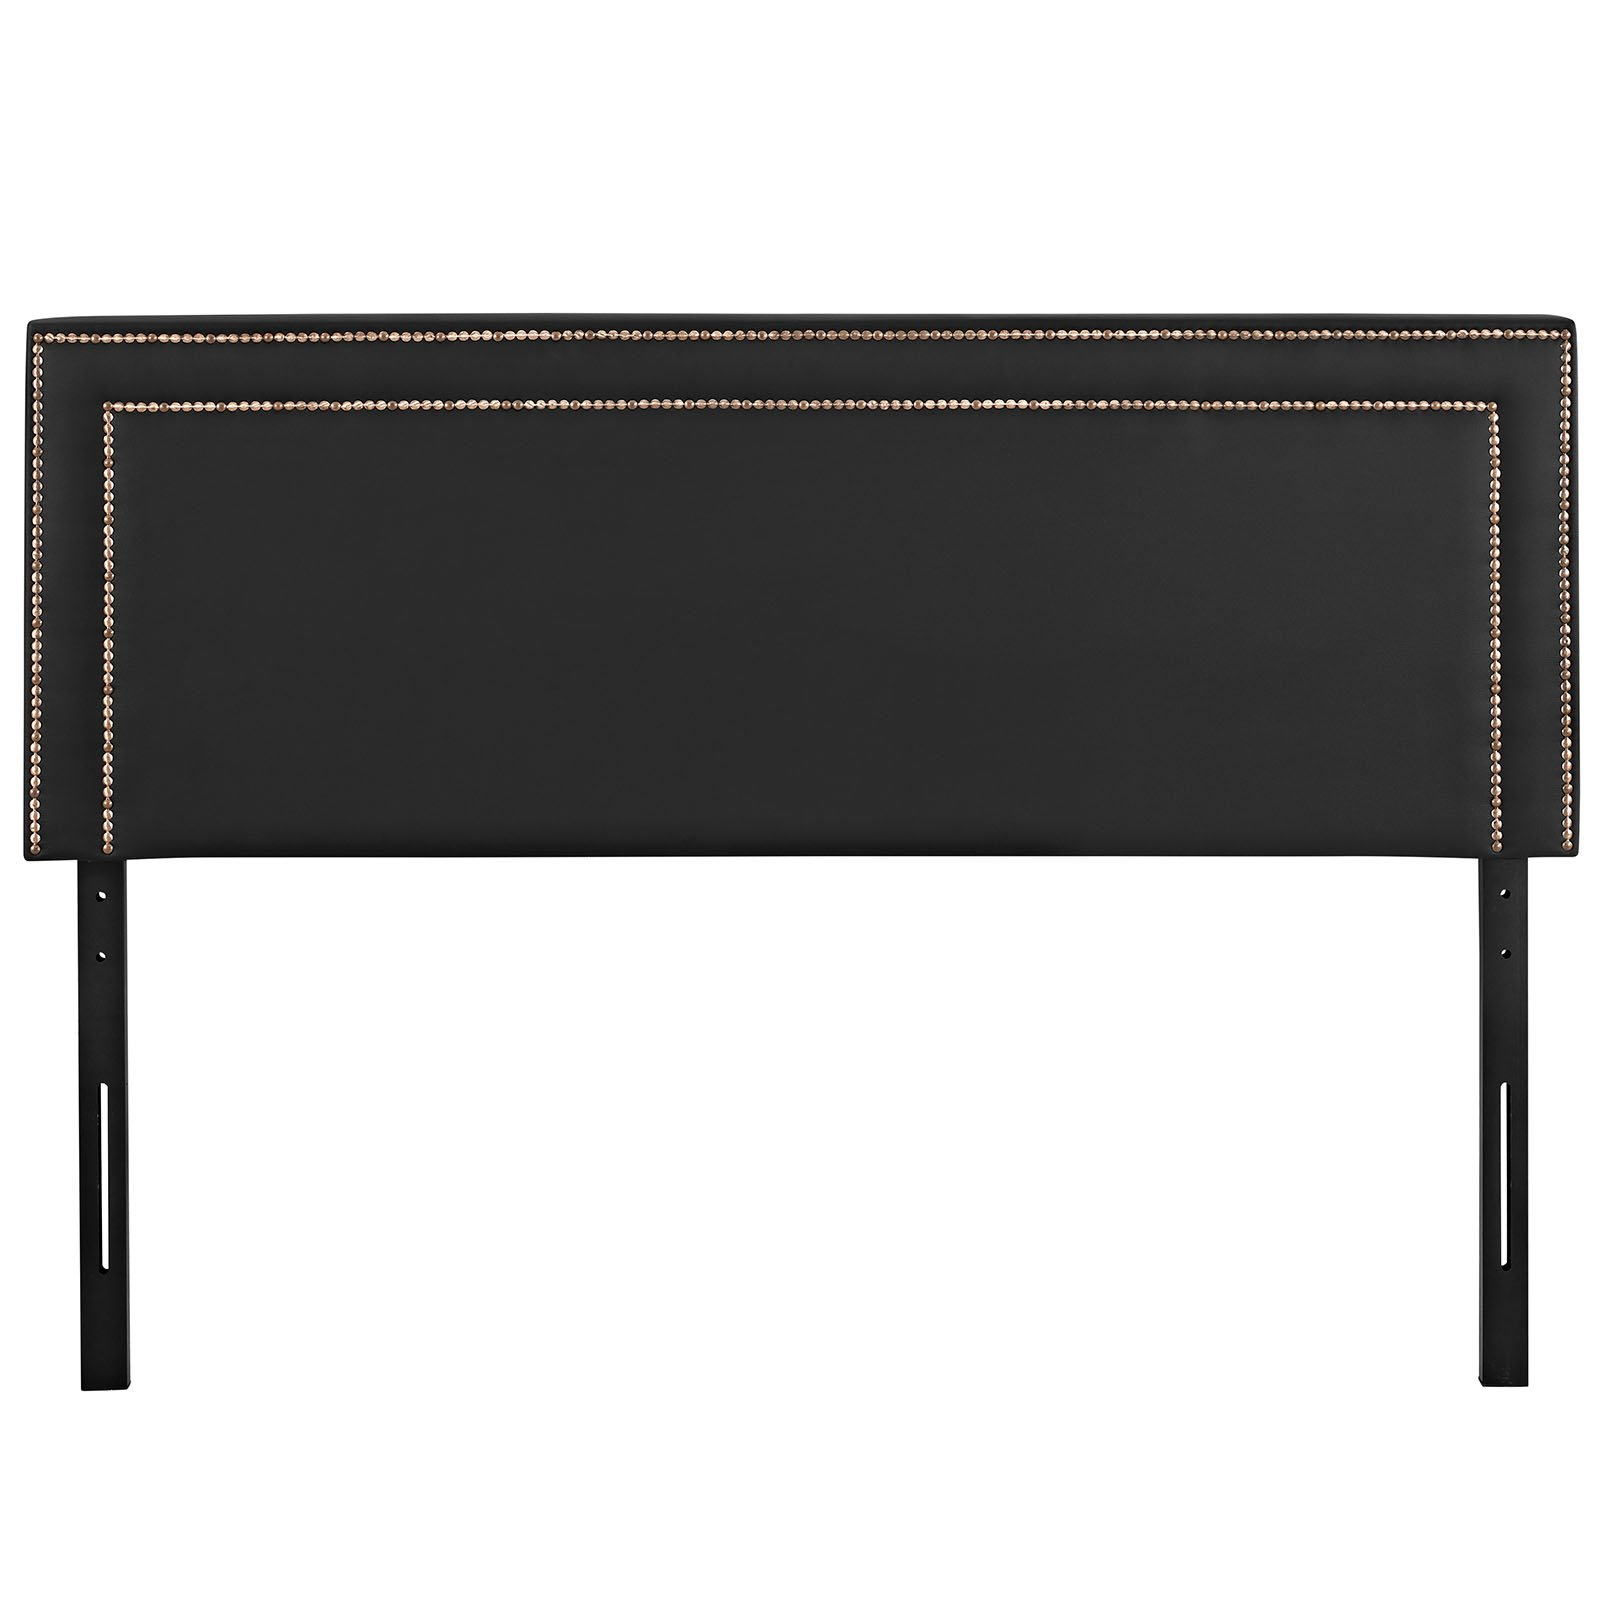 Modway Jessamine Upholstered Vinyl Headboard Full Size With Nailhead Trim In Black